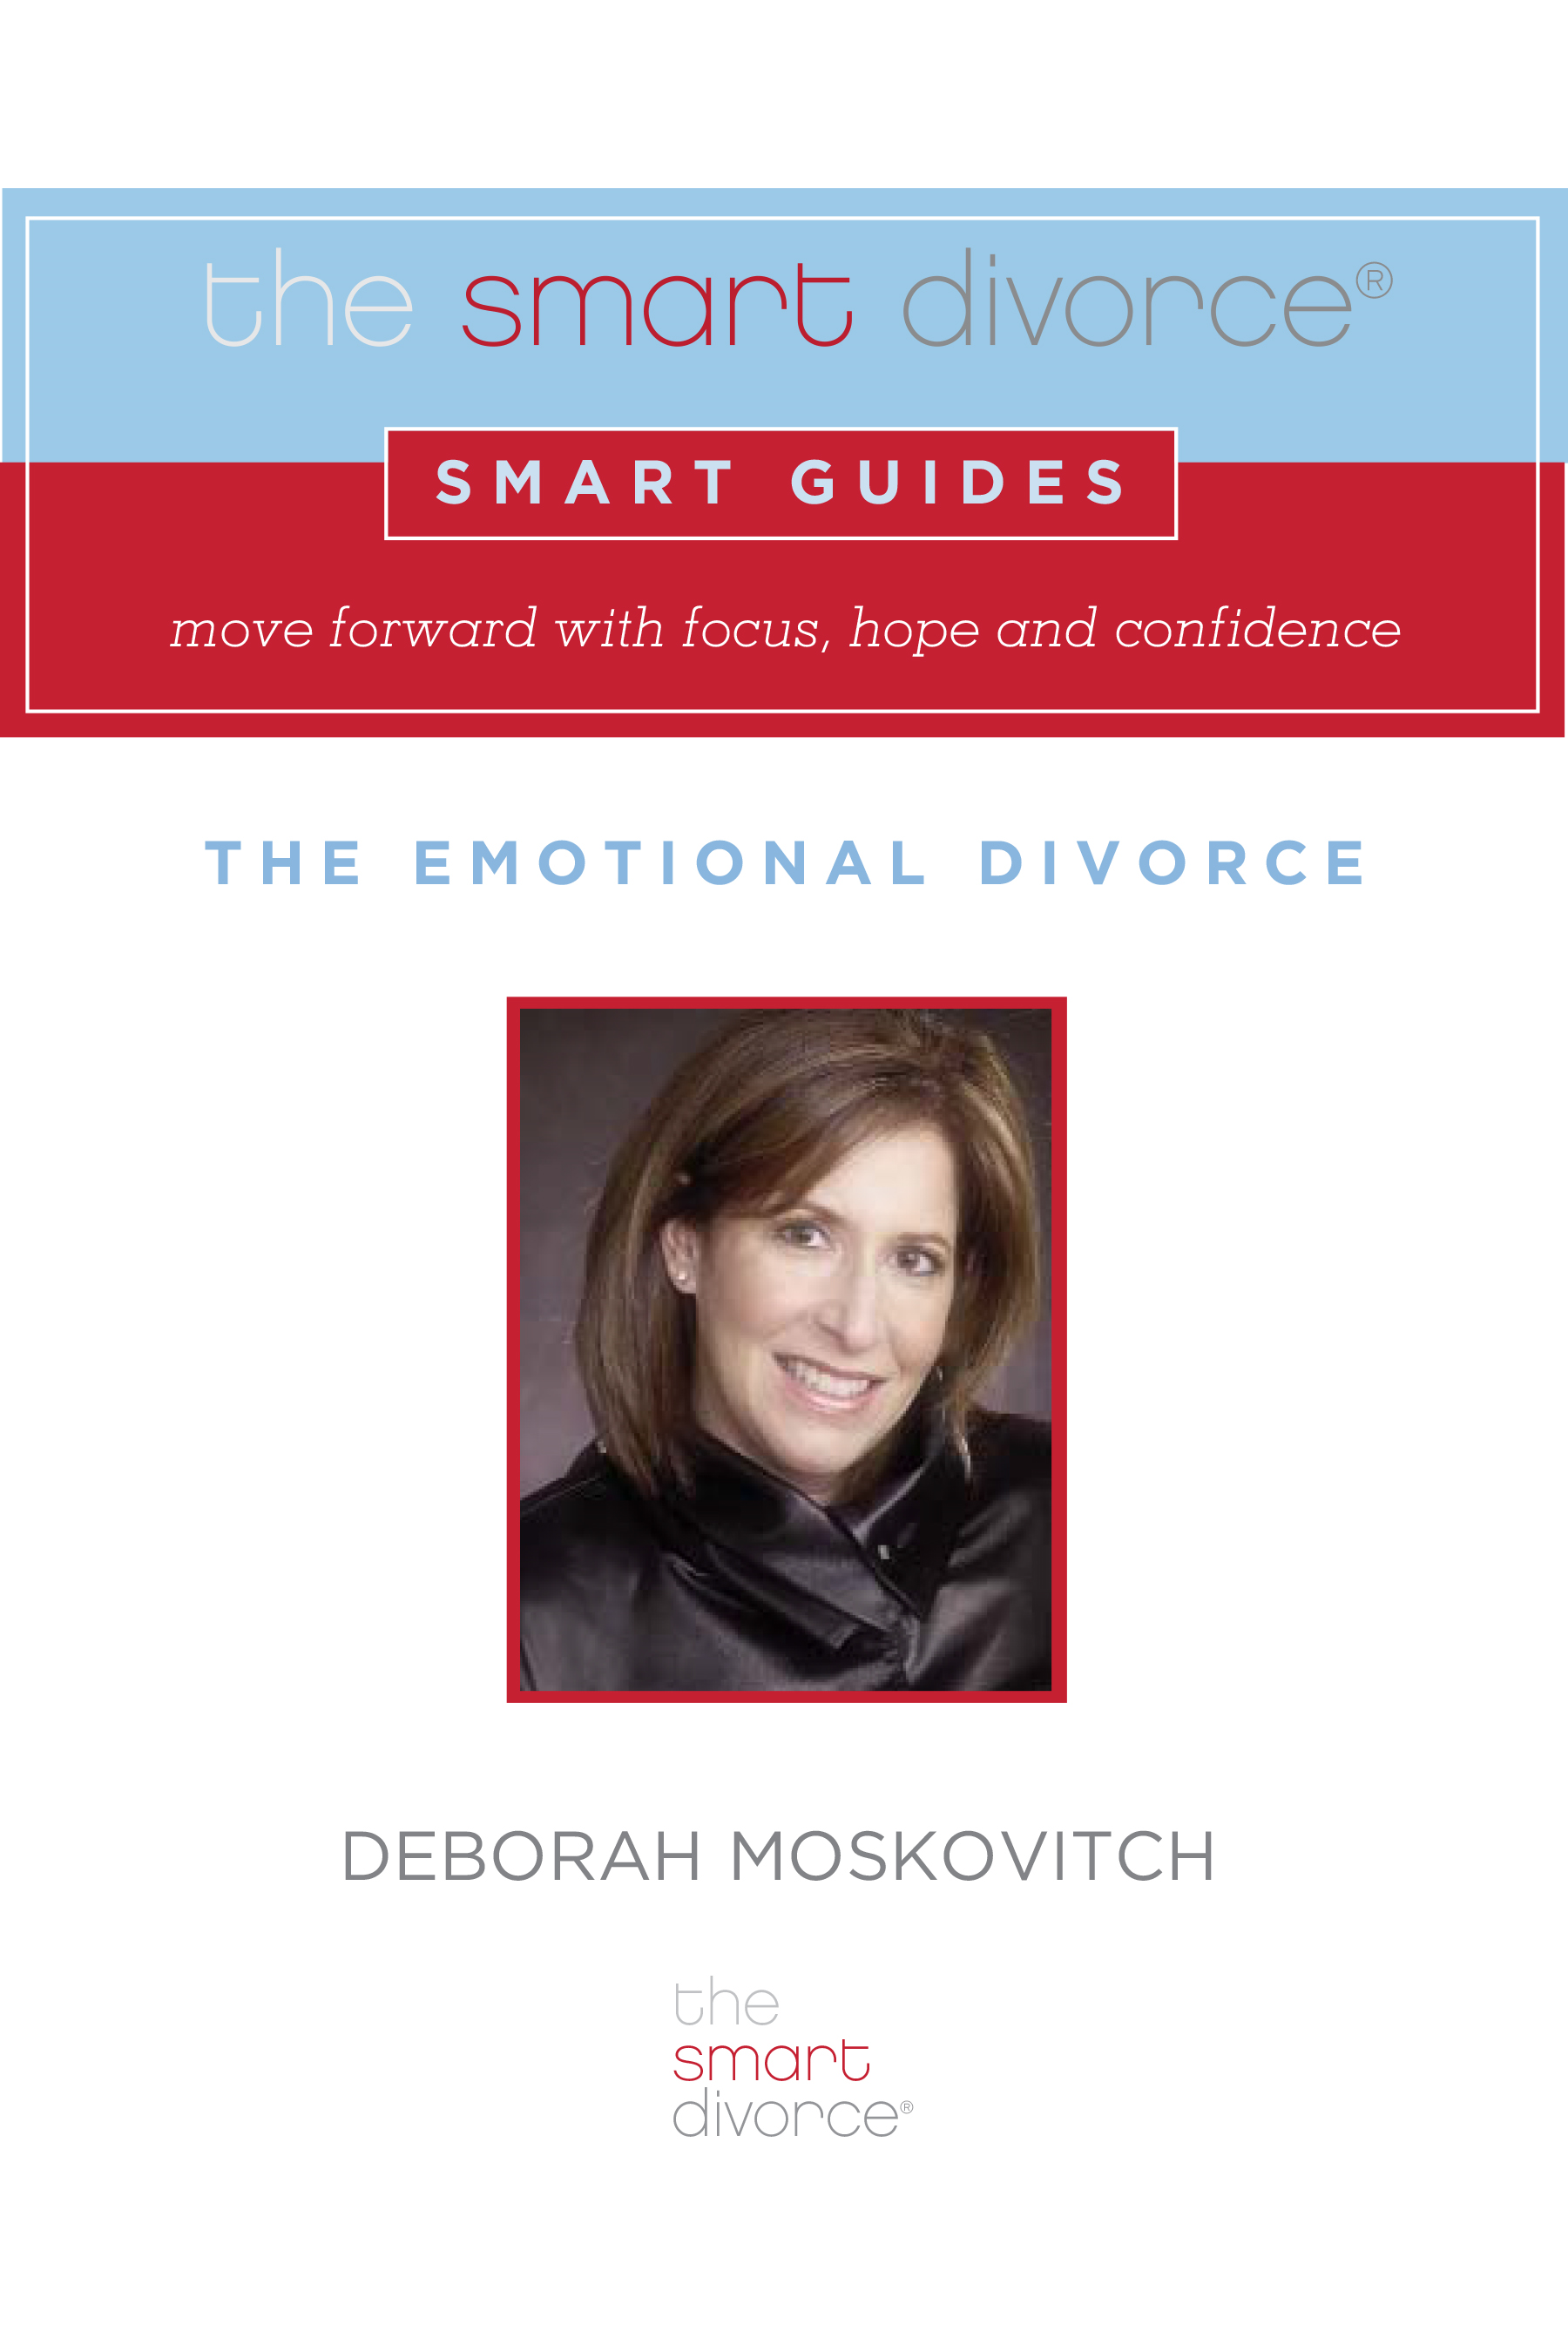 The Smart Divorce Smart Guide: The Emotional Divorce